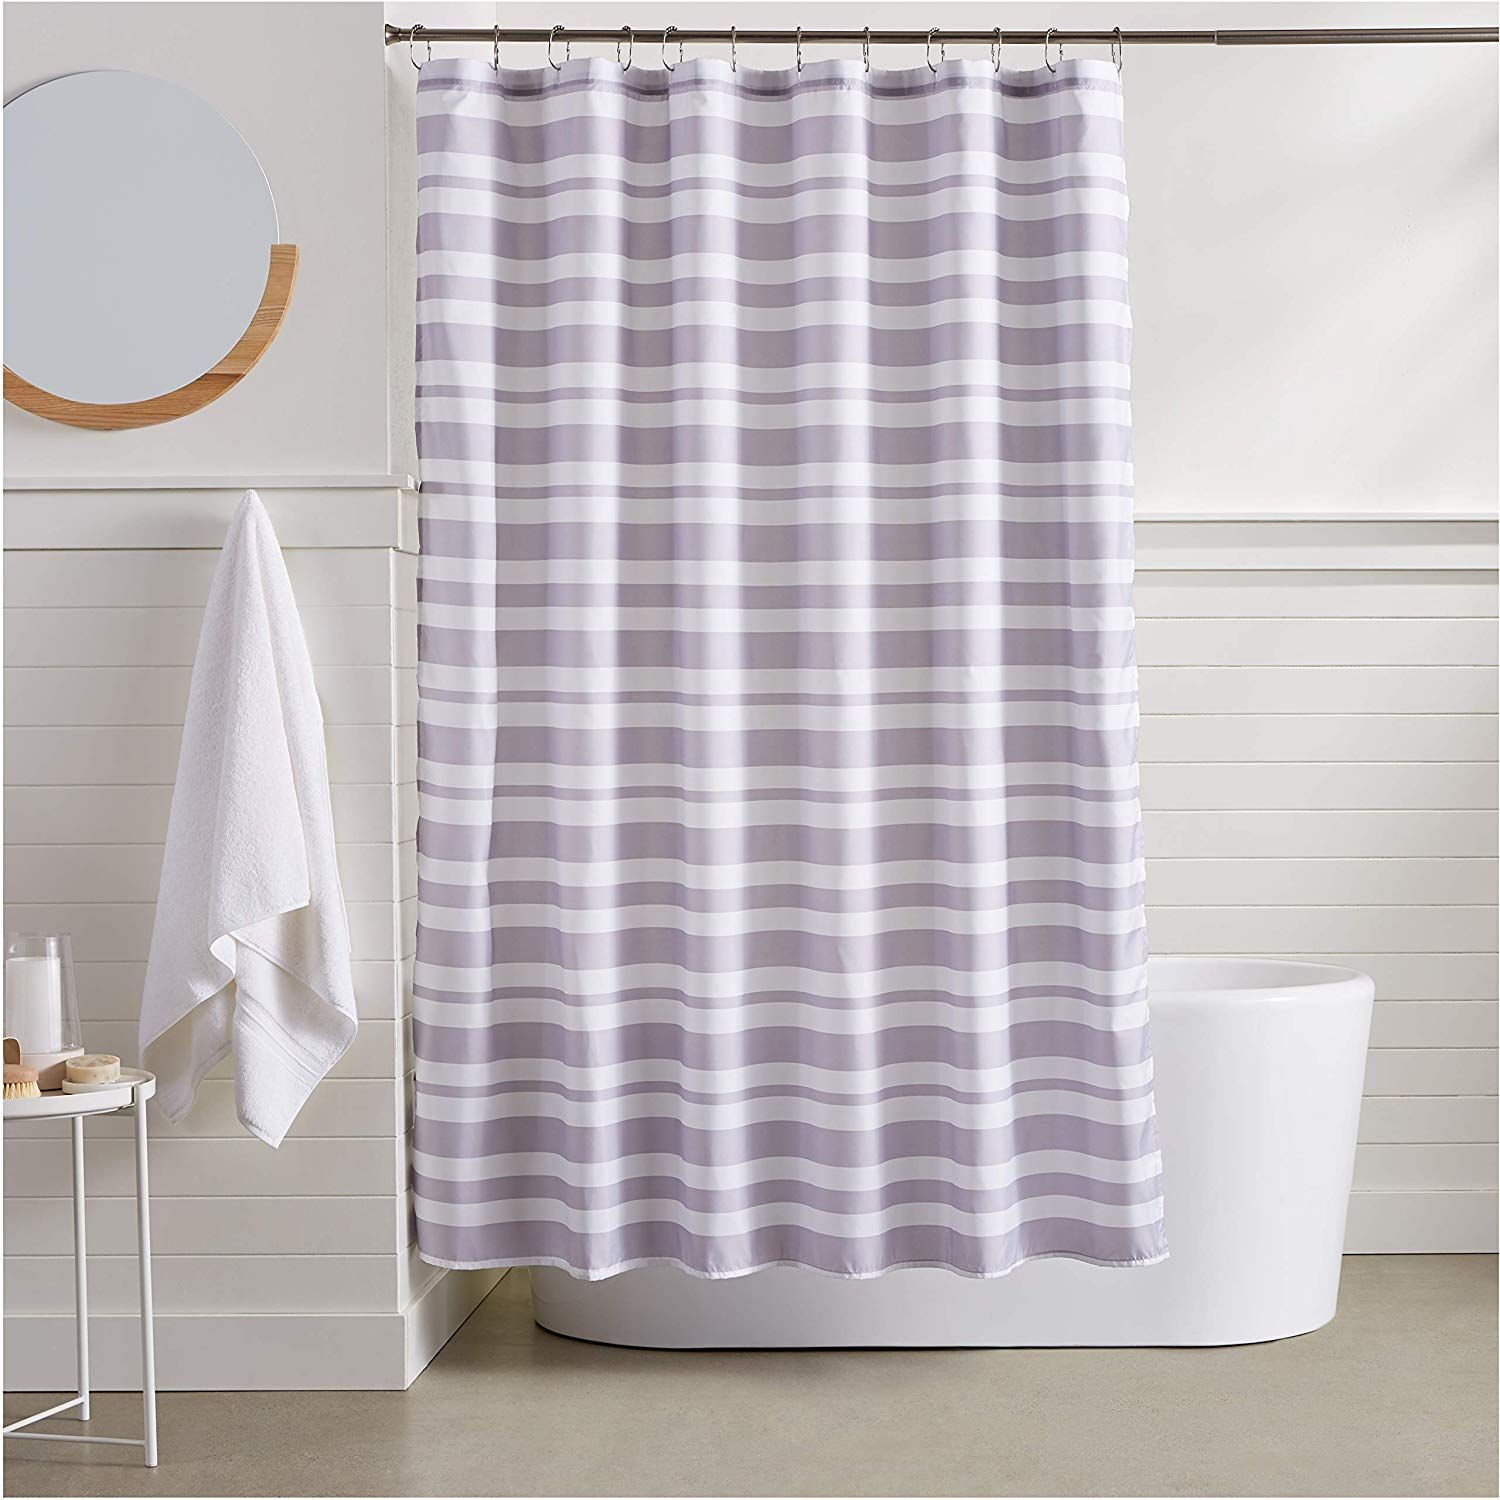 Amazon Basics Grey Herringbone Shower Curtain 72 Inch Our Shower Curtains Are Printed By State Of The Art Digita Shower Curtain Curtains Gray Shower Curtains